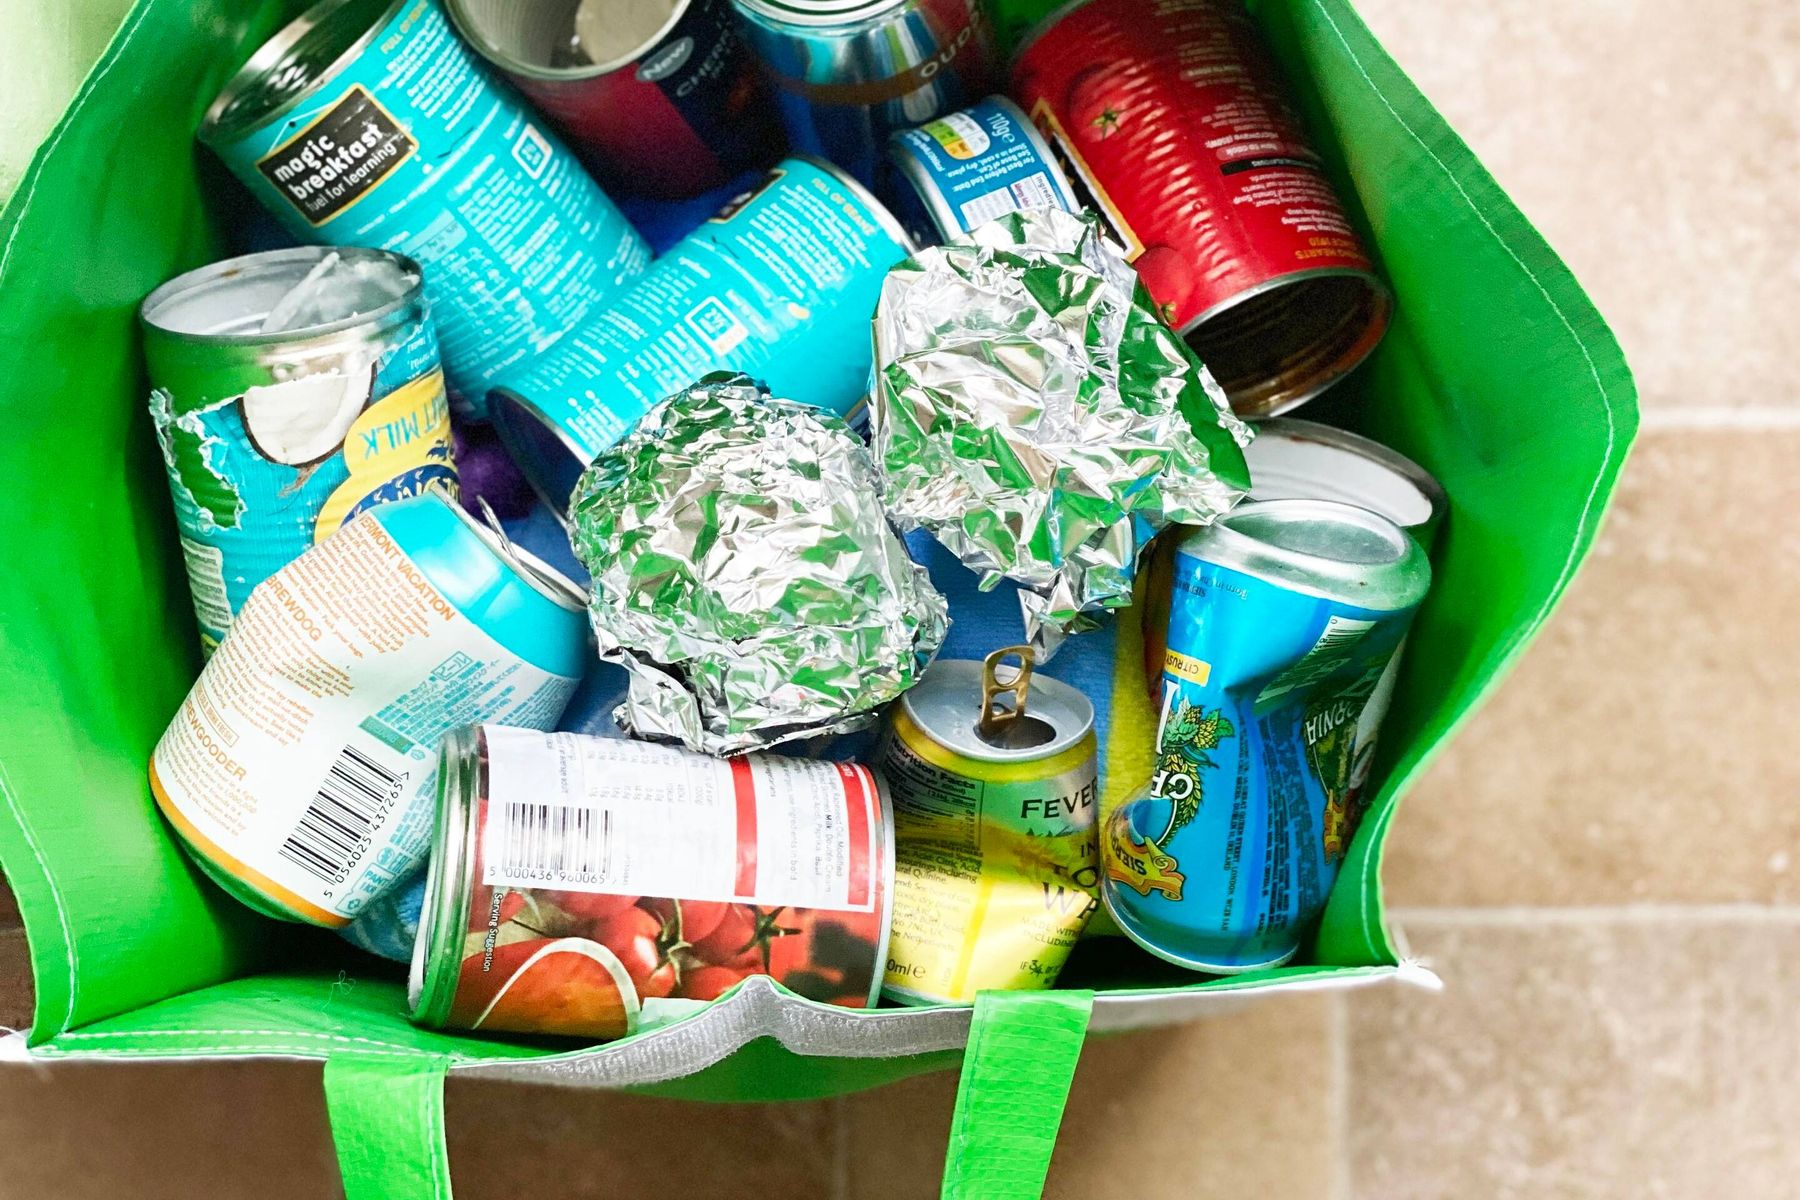 Empty tins, cans and tinfoil